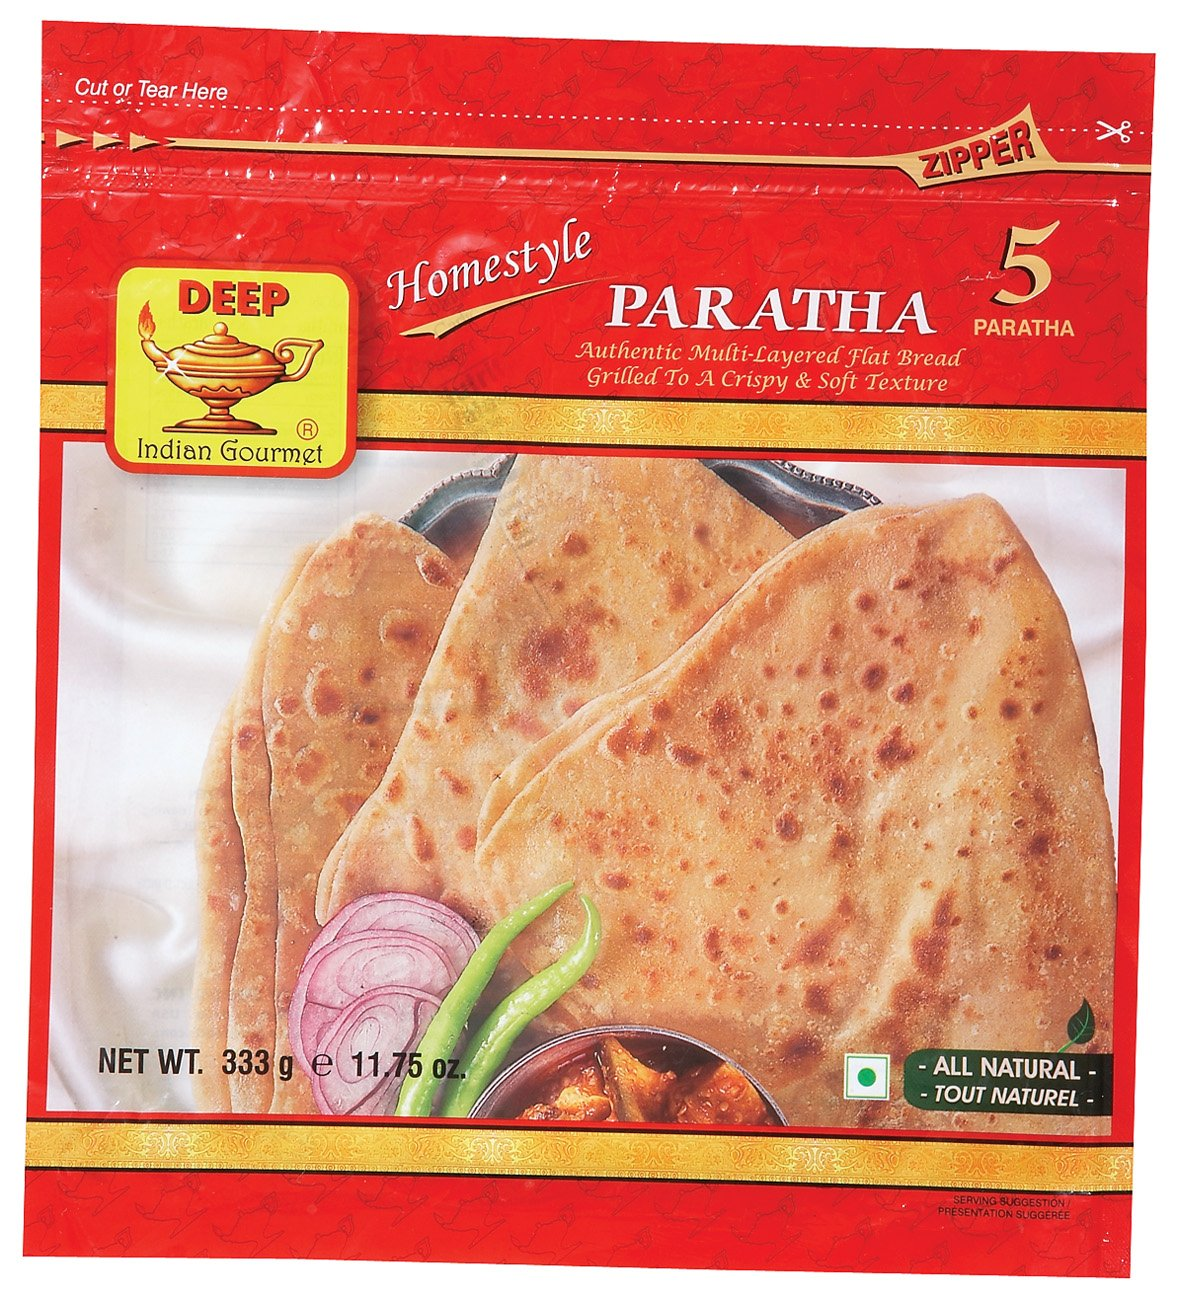 DEEP HOMESTYLE PARATHA 5 pcs